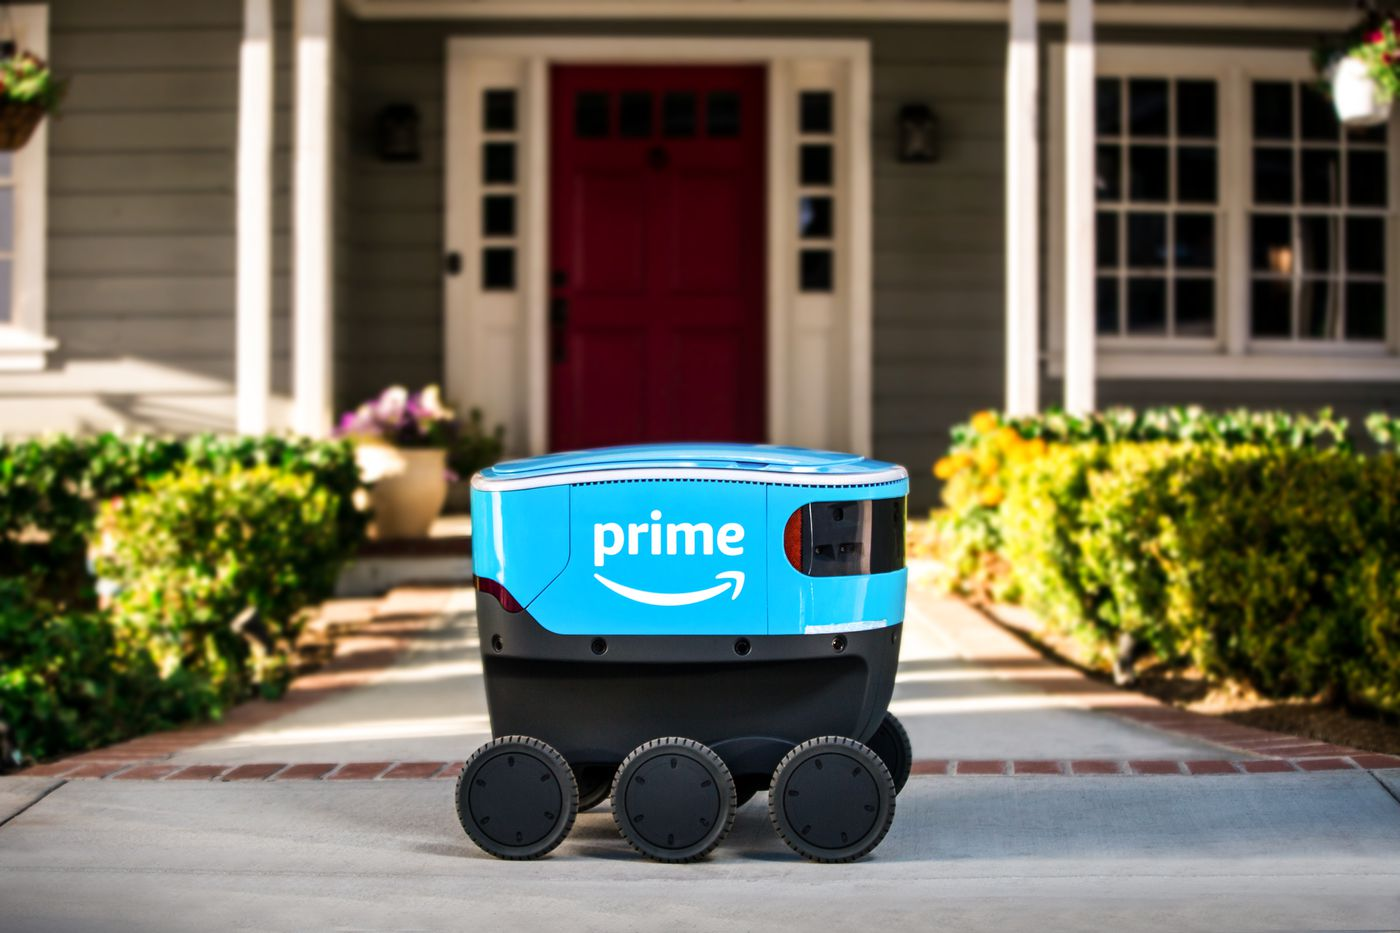 Why Amazon needs to rethink its Prime delivery service - Curbed